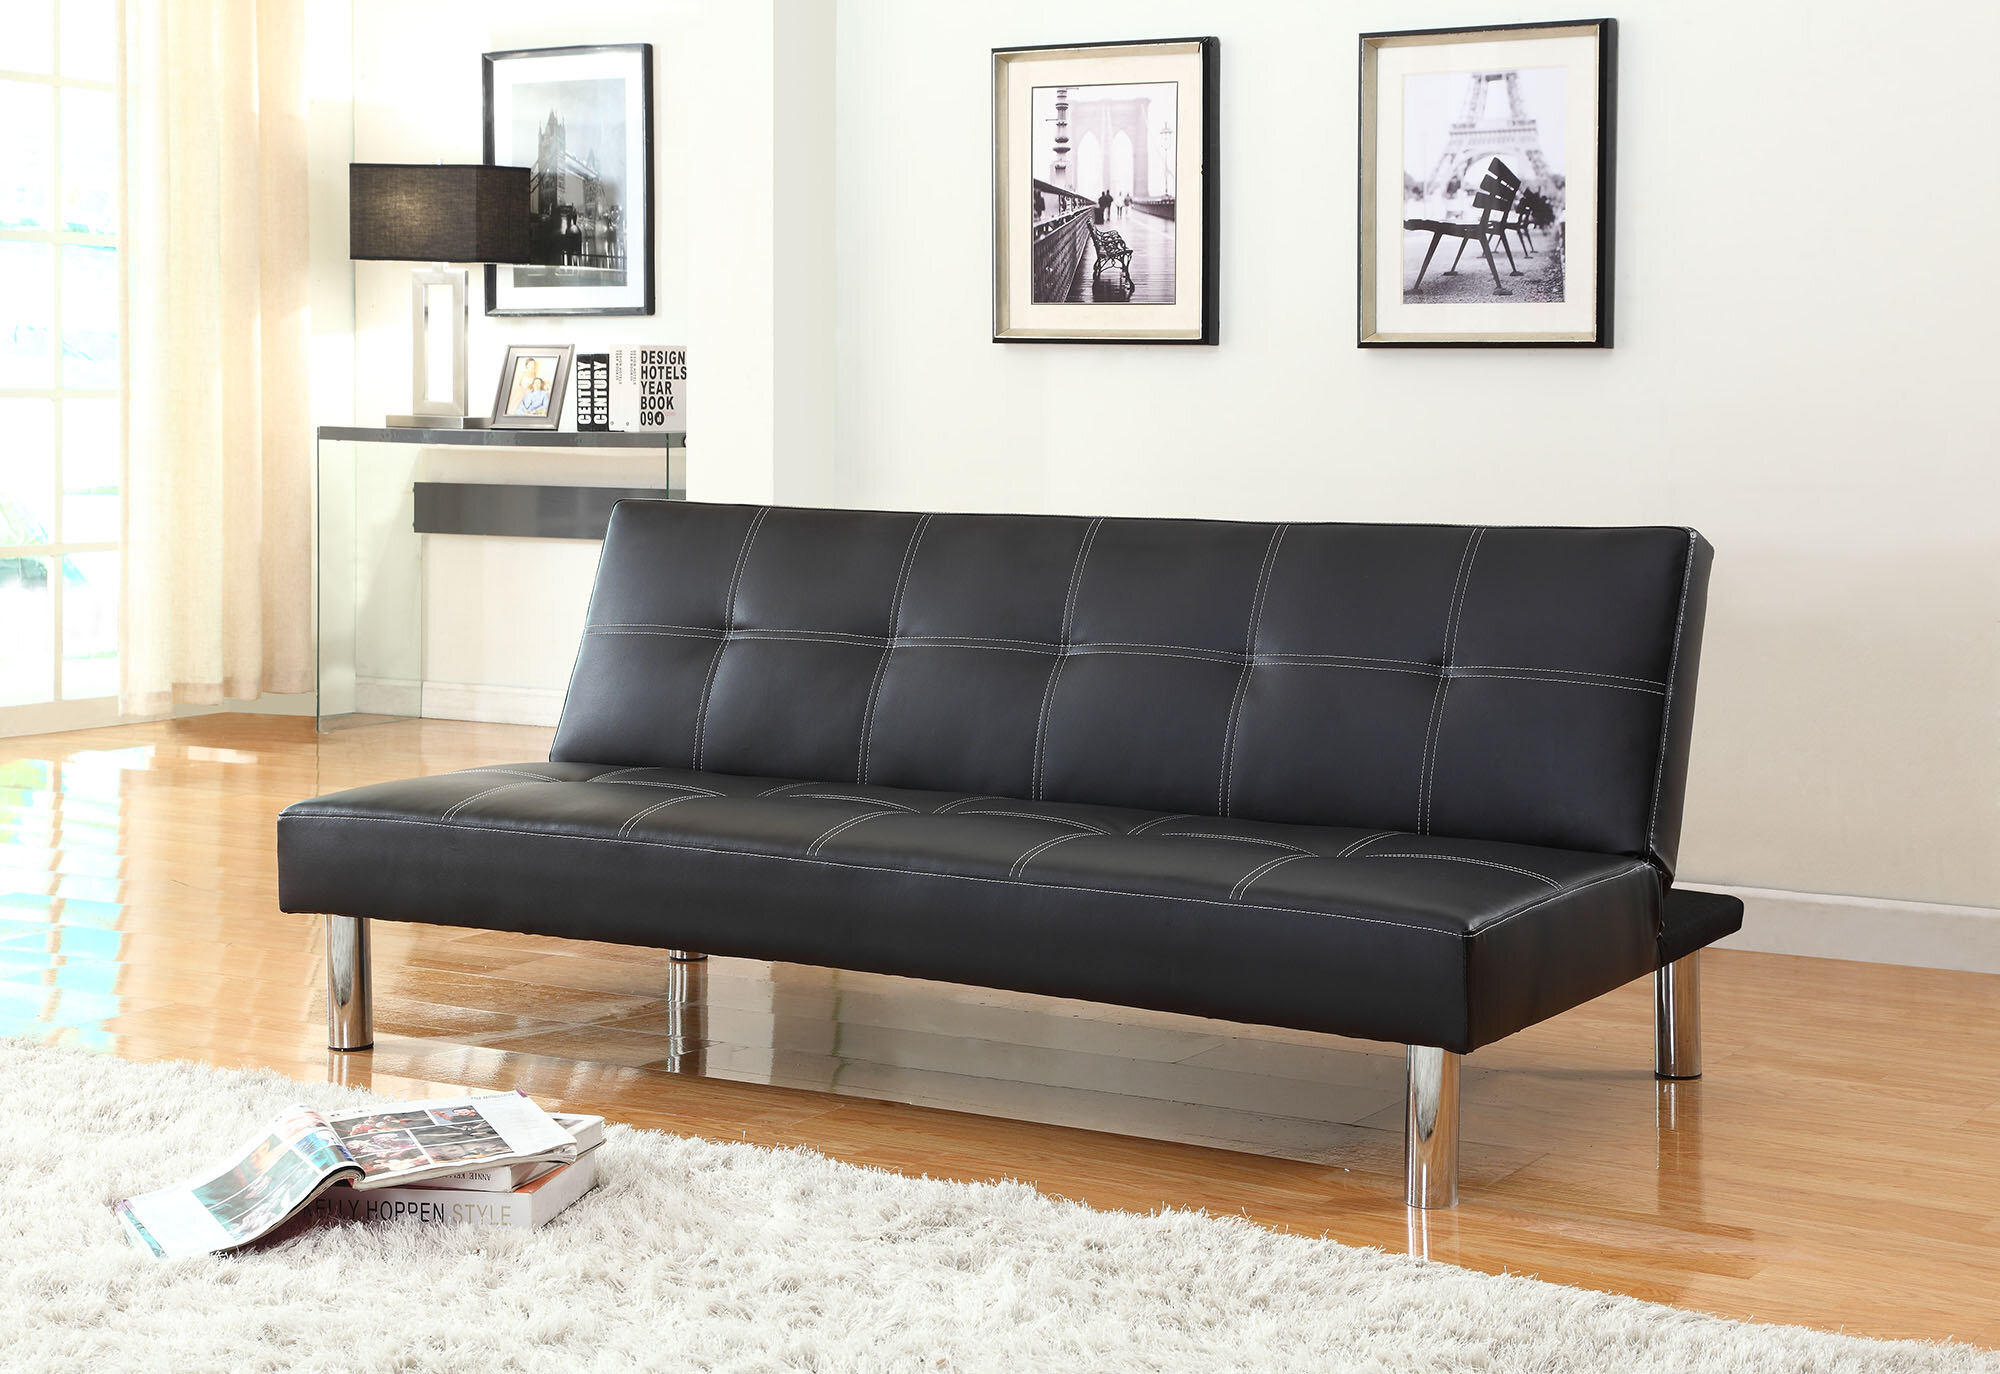 NathanielHome Issac Futon Convertible Sofa & Reviews | Wayfair